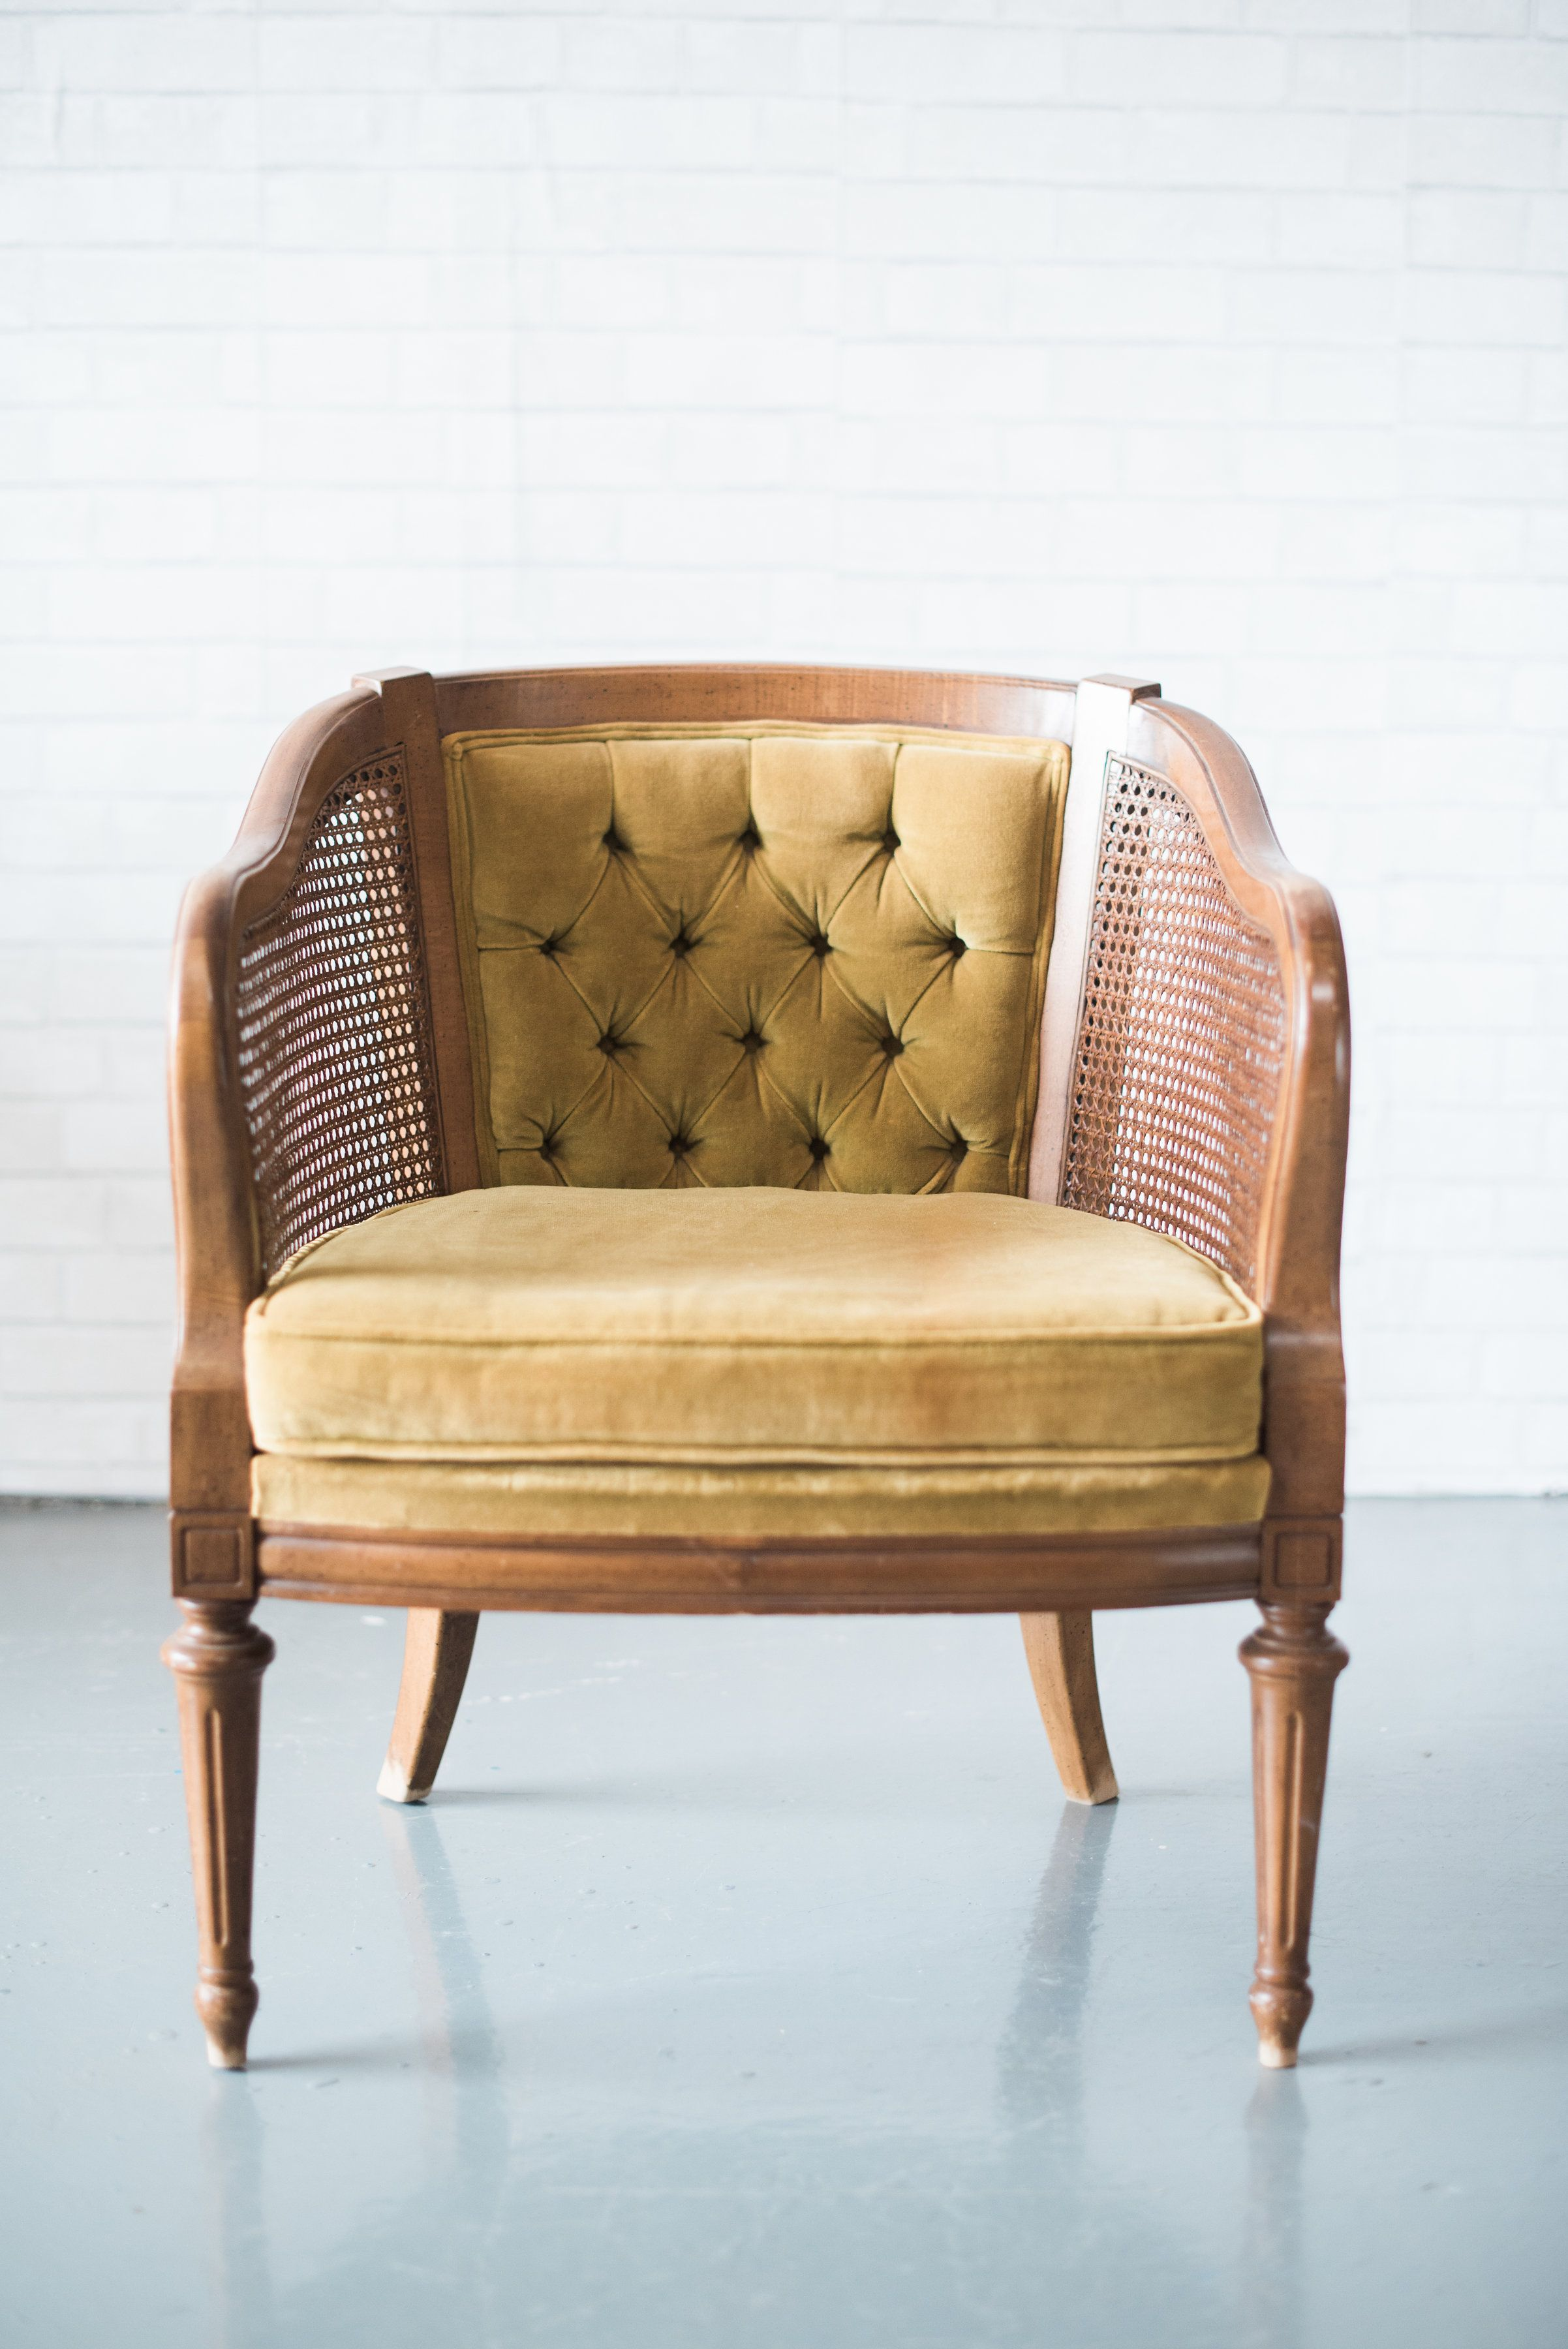 colonal mustard chair rentals for weddings and special events in